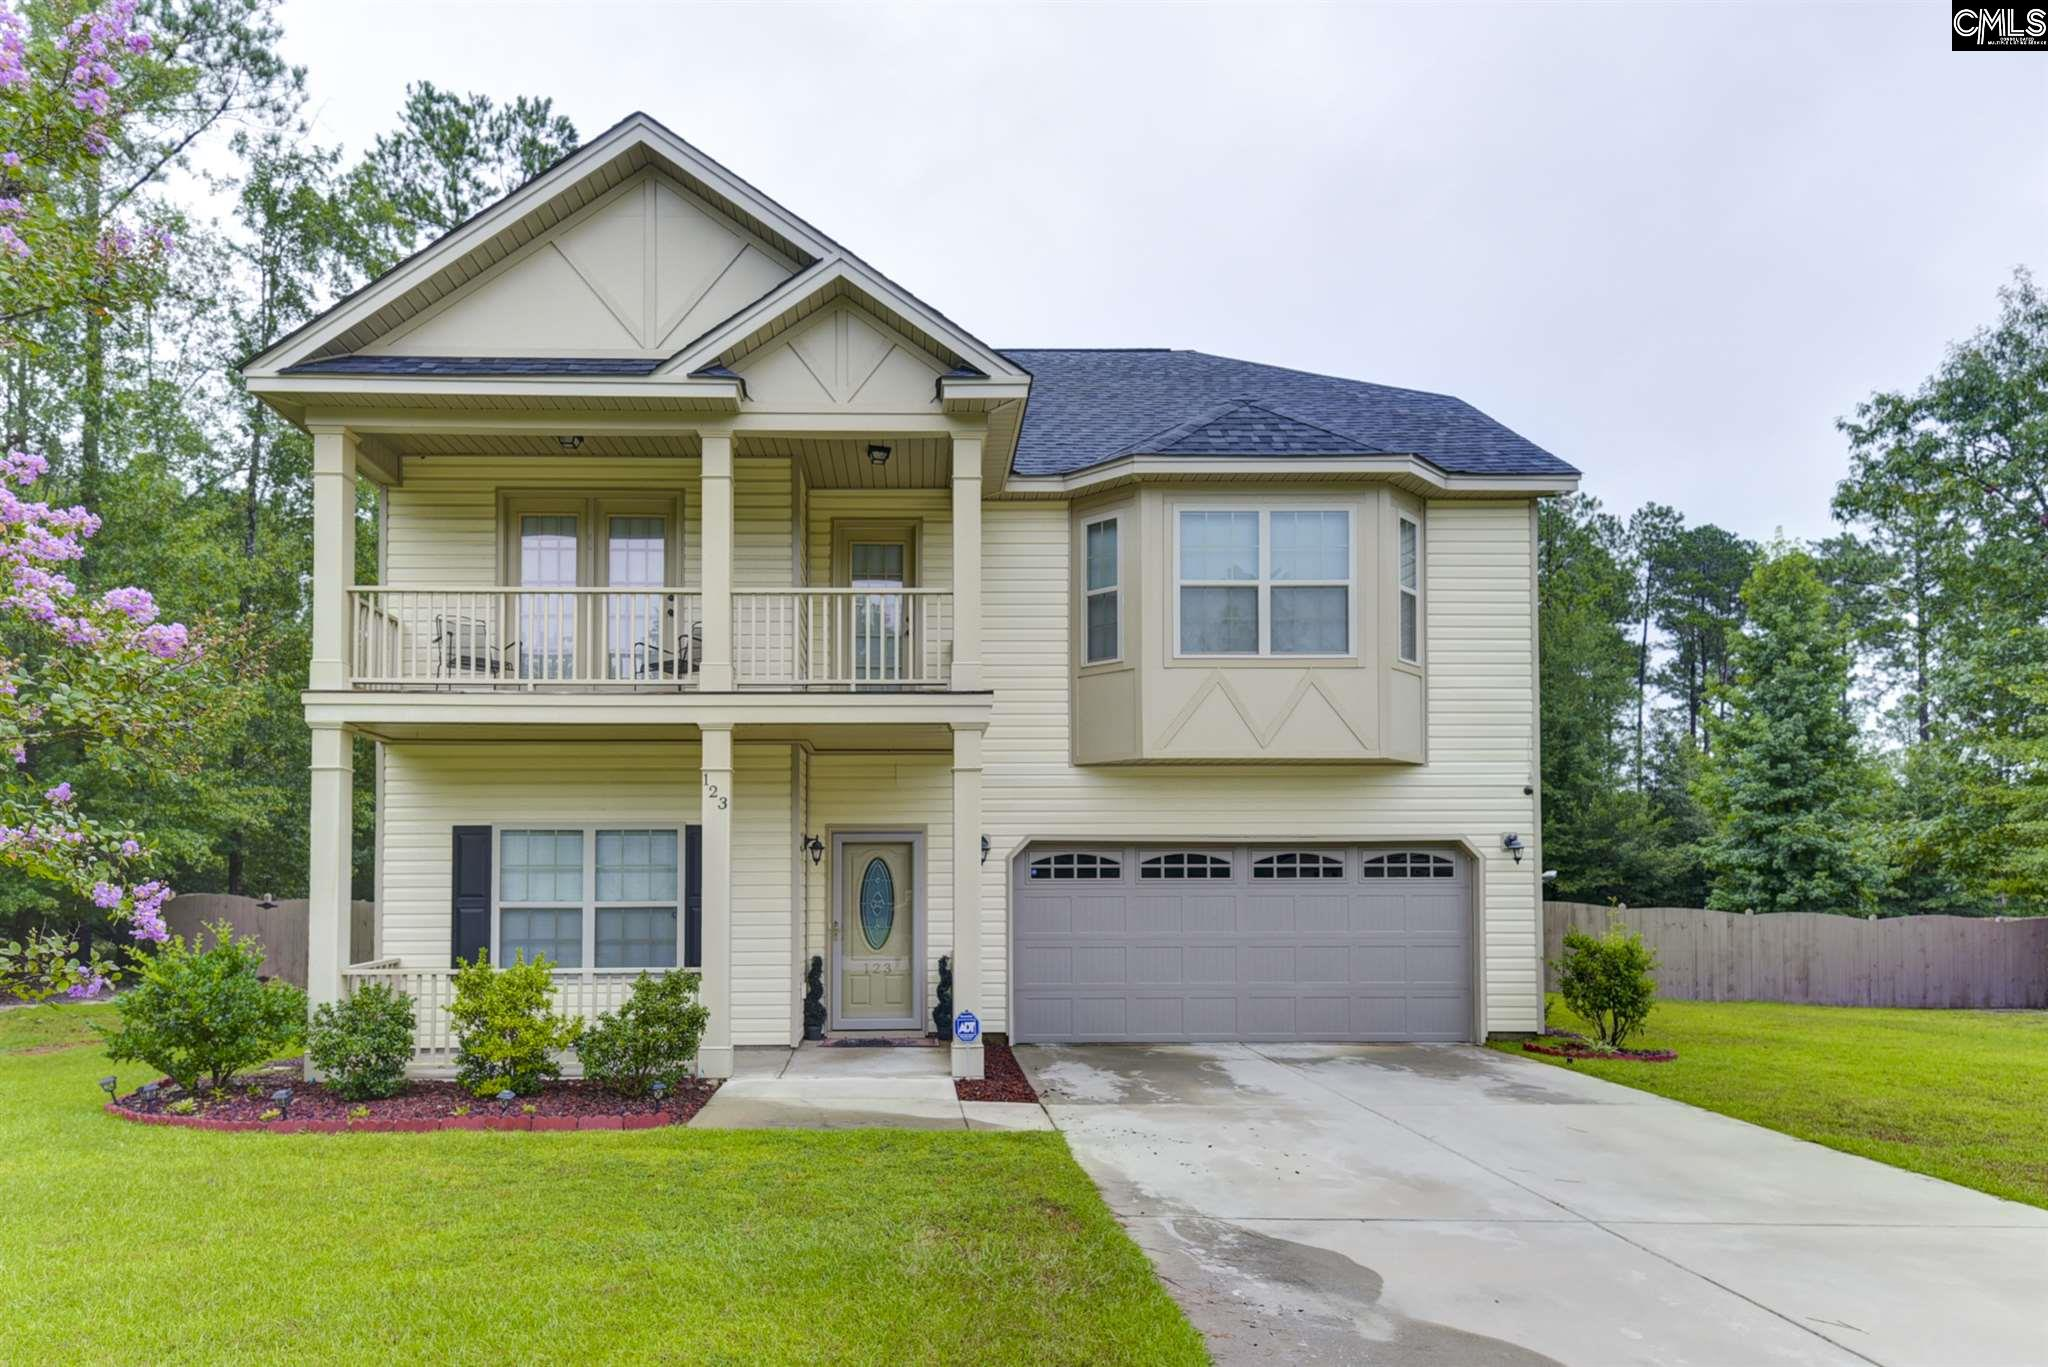 123 Eden Brook Gaston, SC 29053